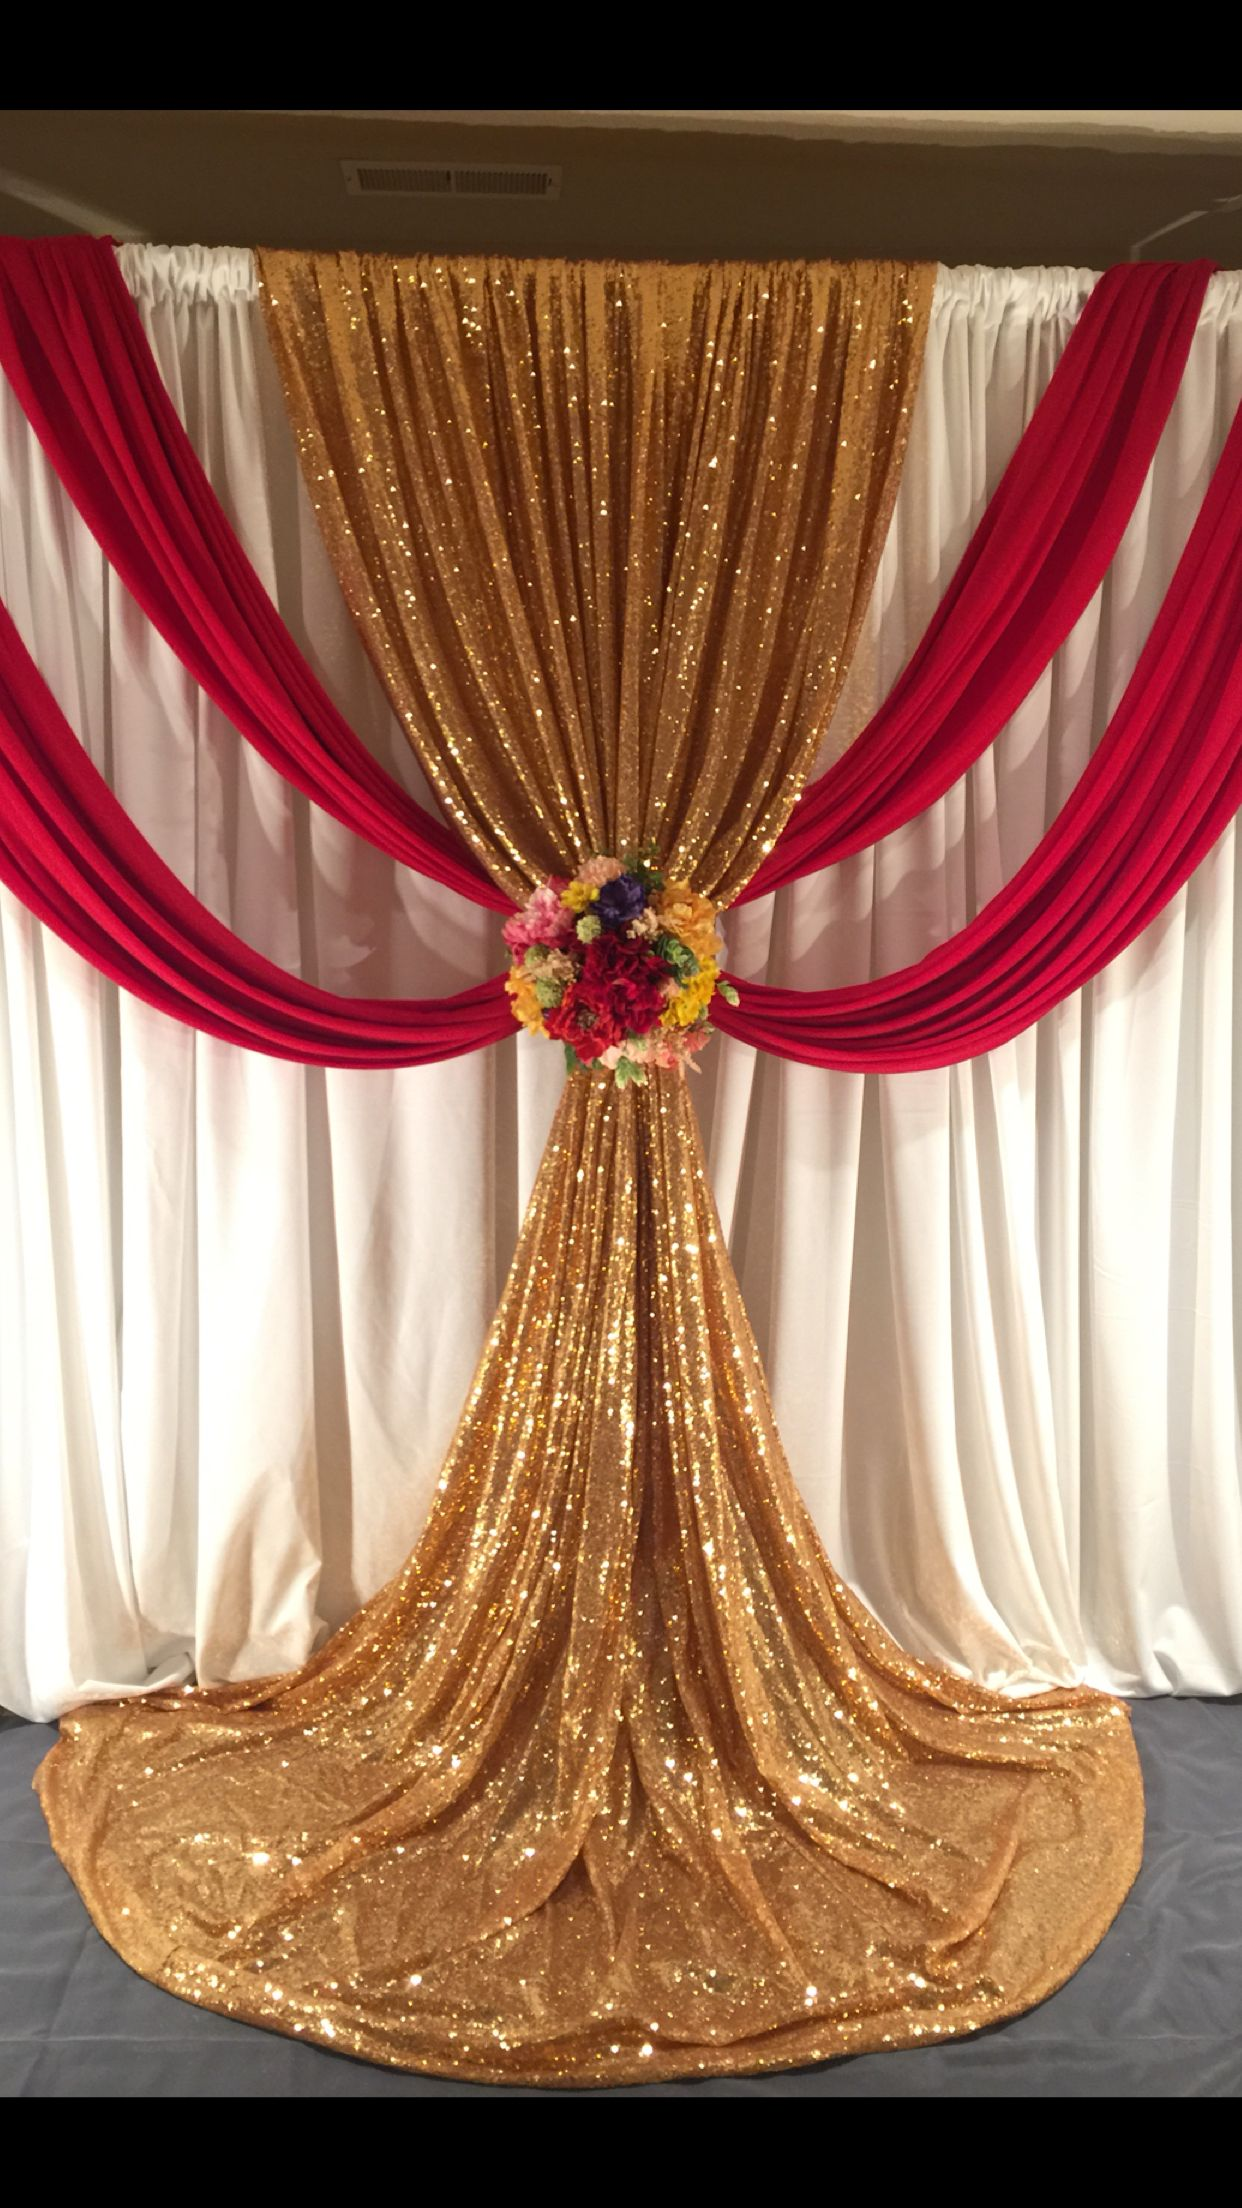 Wedding Ceremony Backdrop Red And Gold Draping Wedding Ceremony